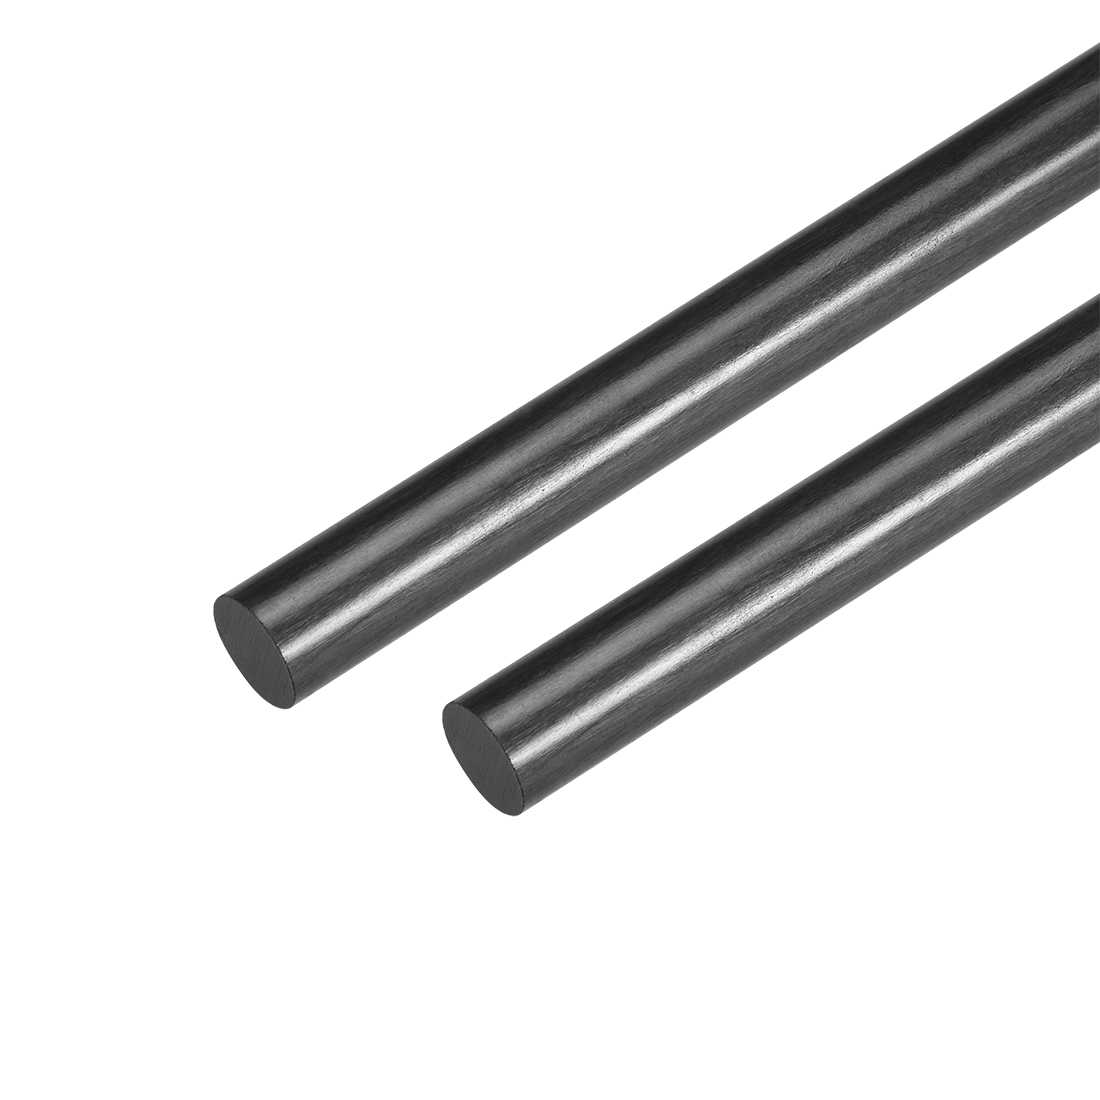 8.5mm Carbon Fiber Bar For RC Airplane Matte Pole US, 200mm 7.8 inch, 2pcs